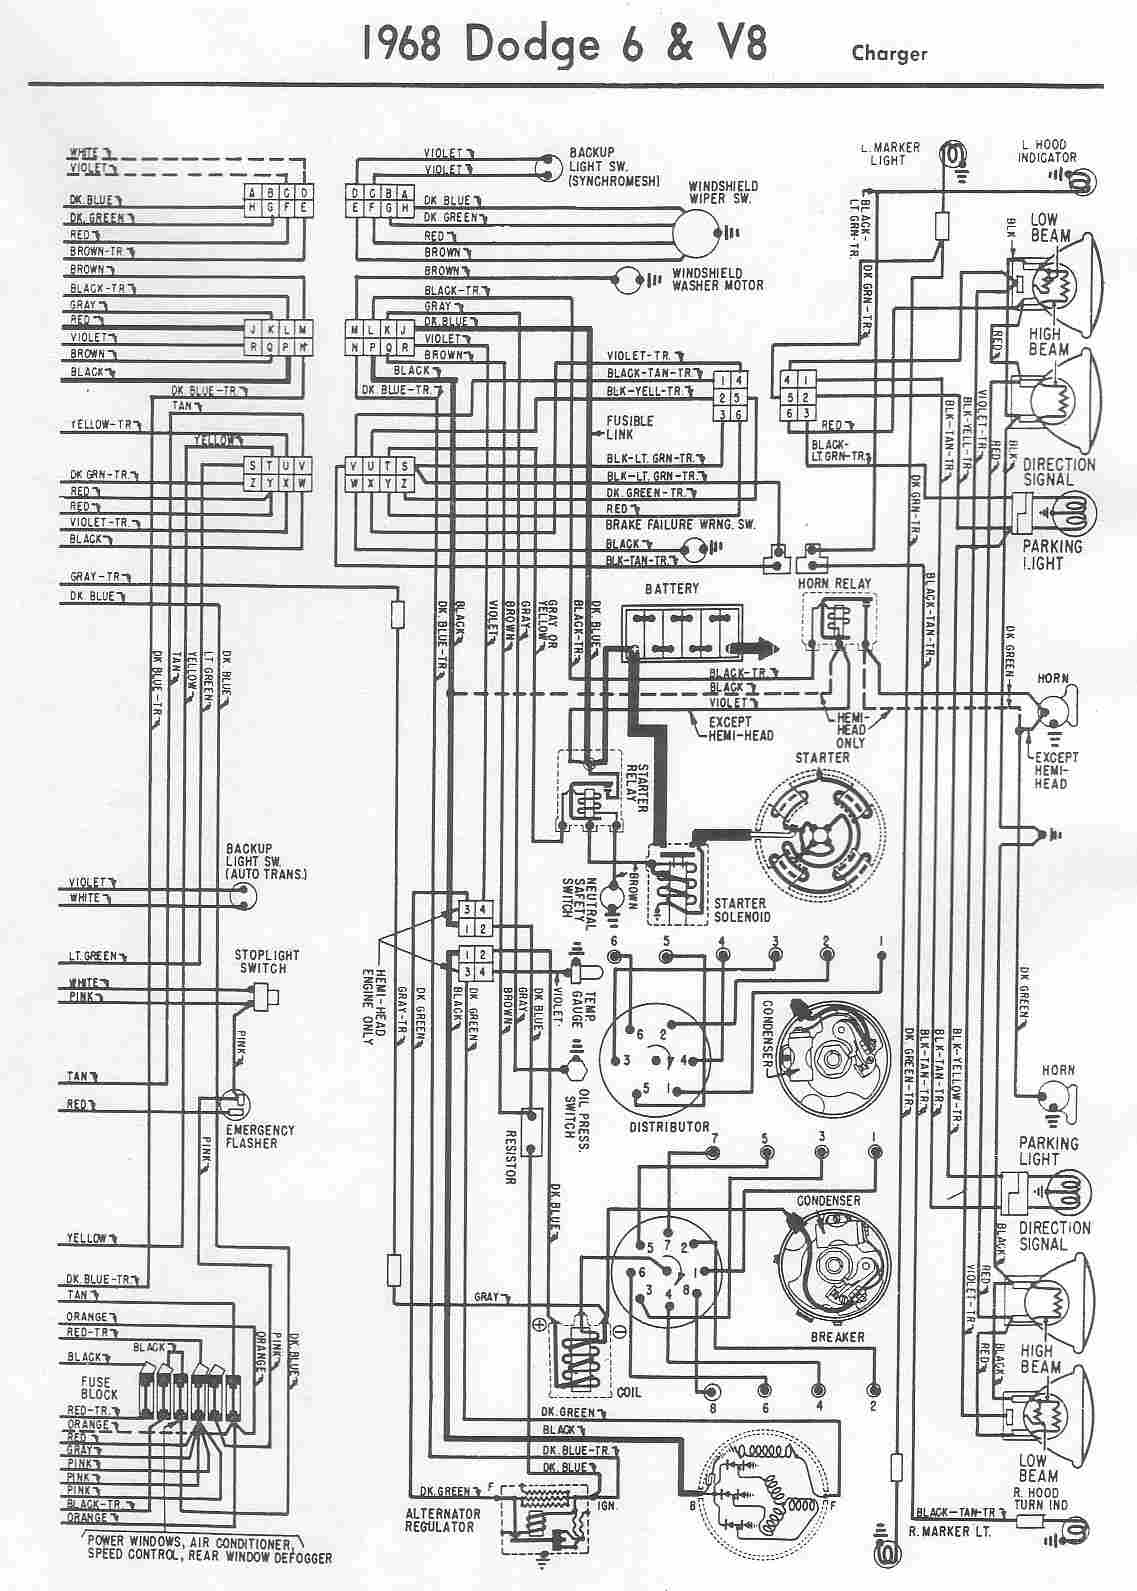 heater wiring diagram for 98 neon wiring library crank sensor wiring diagram 1996 1997 1998 dodge plymouth neon 20l [ 1137 x 1591 Pixel ]